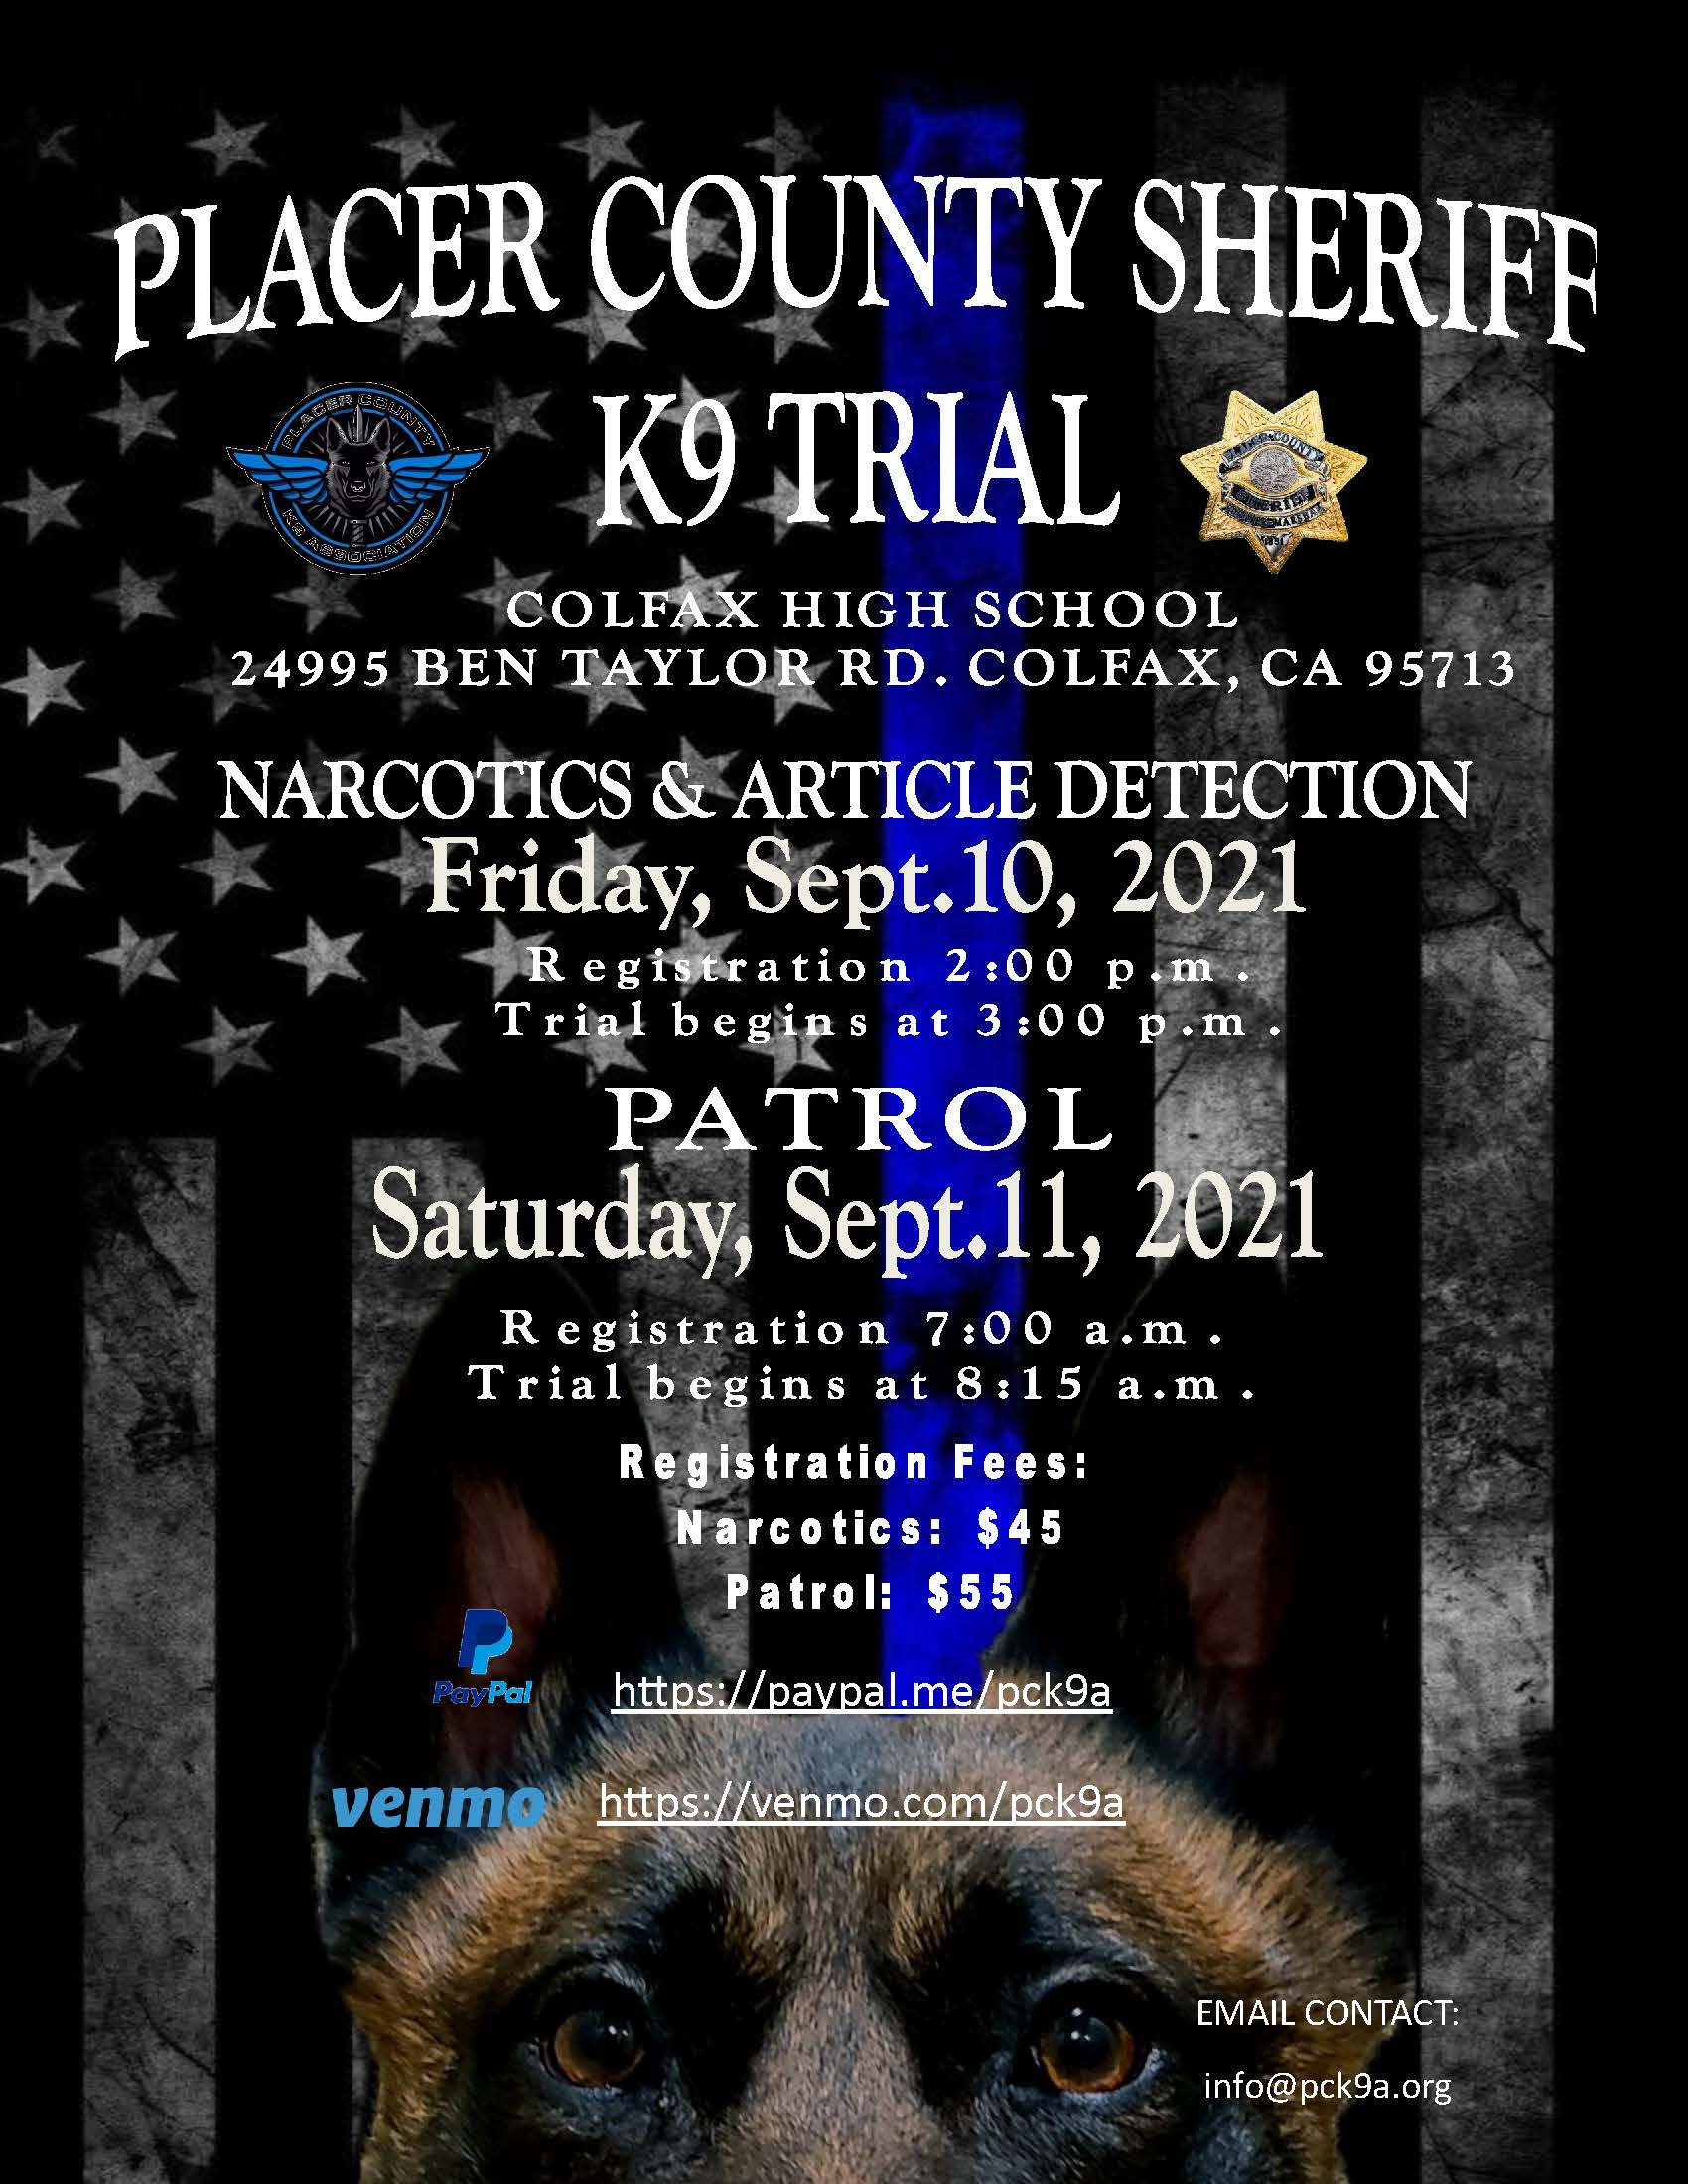 Placer County Sheriff's K9 Trial - Sept. 10 & 11, 2021